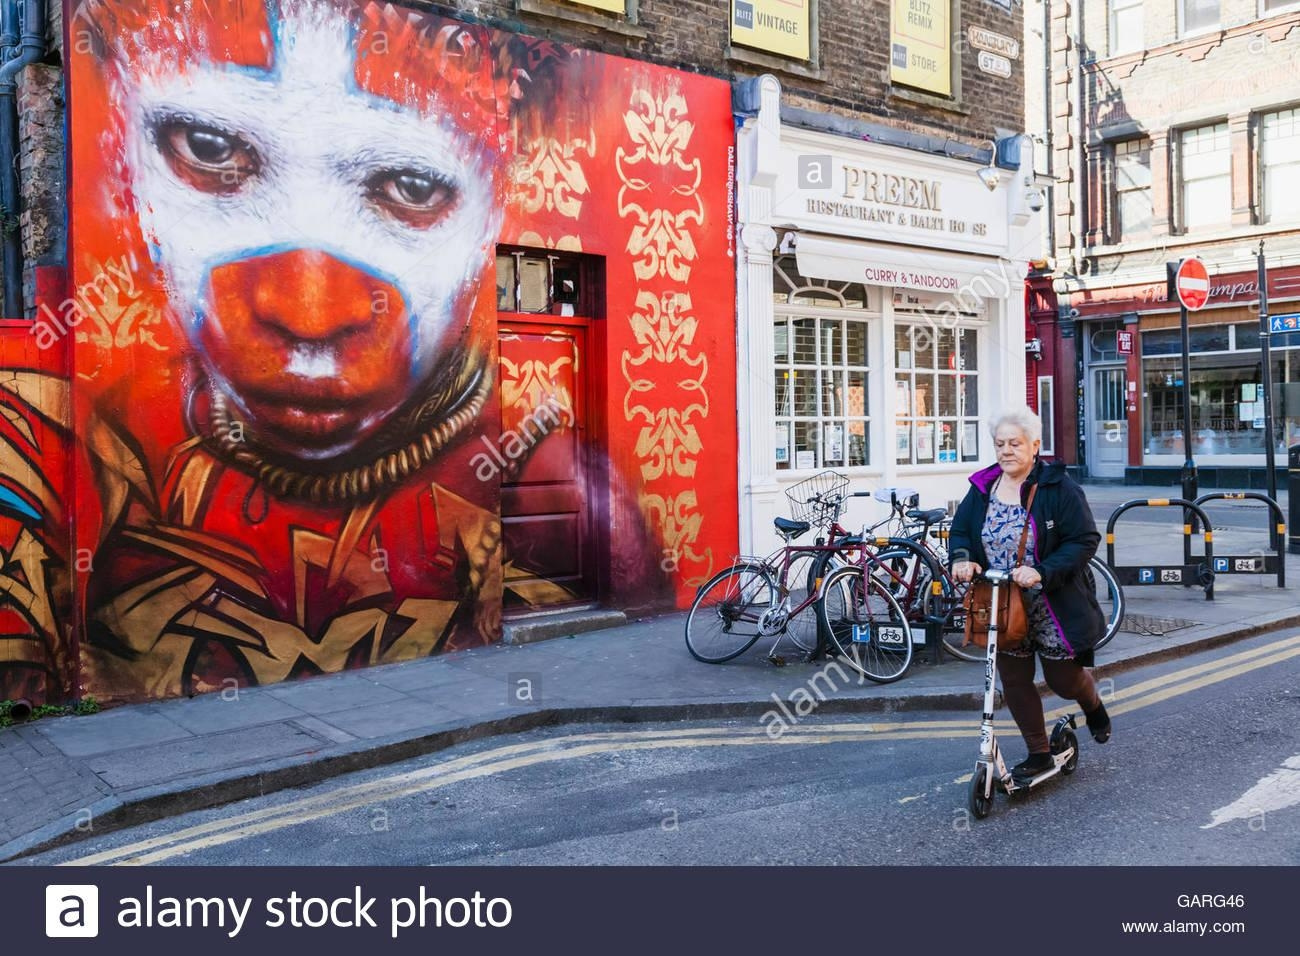 England, London, Shoreditch, Street Scene With Wall Art Stock Regarding London Scene Wall Art (Image 6 of 20)